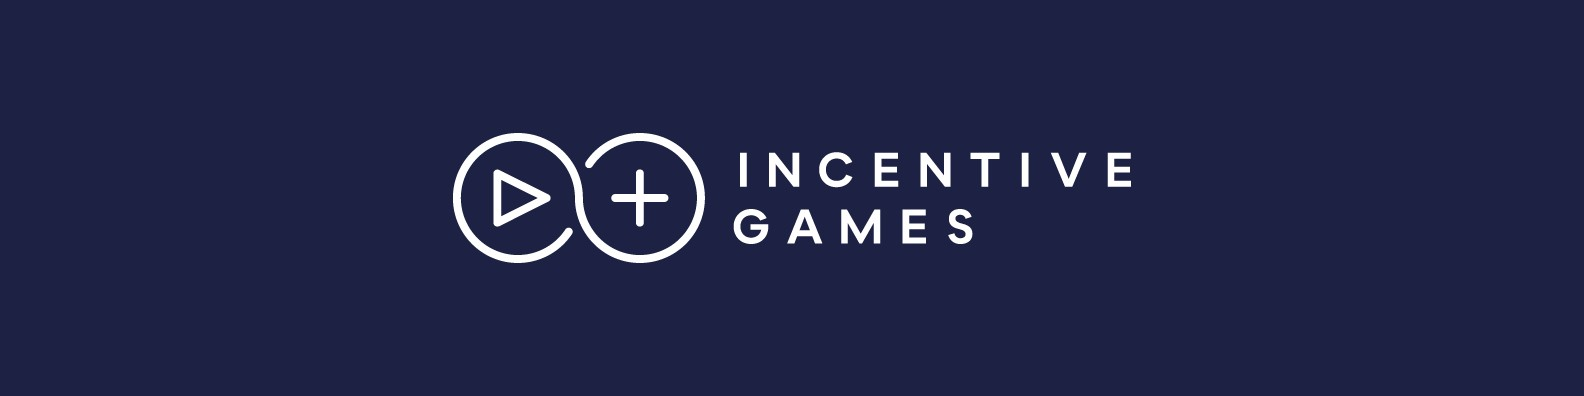 Incentive Games